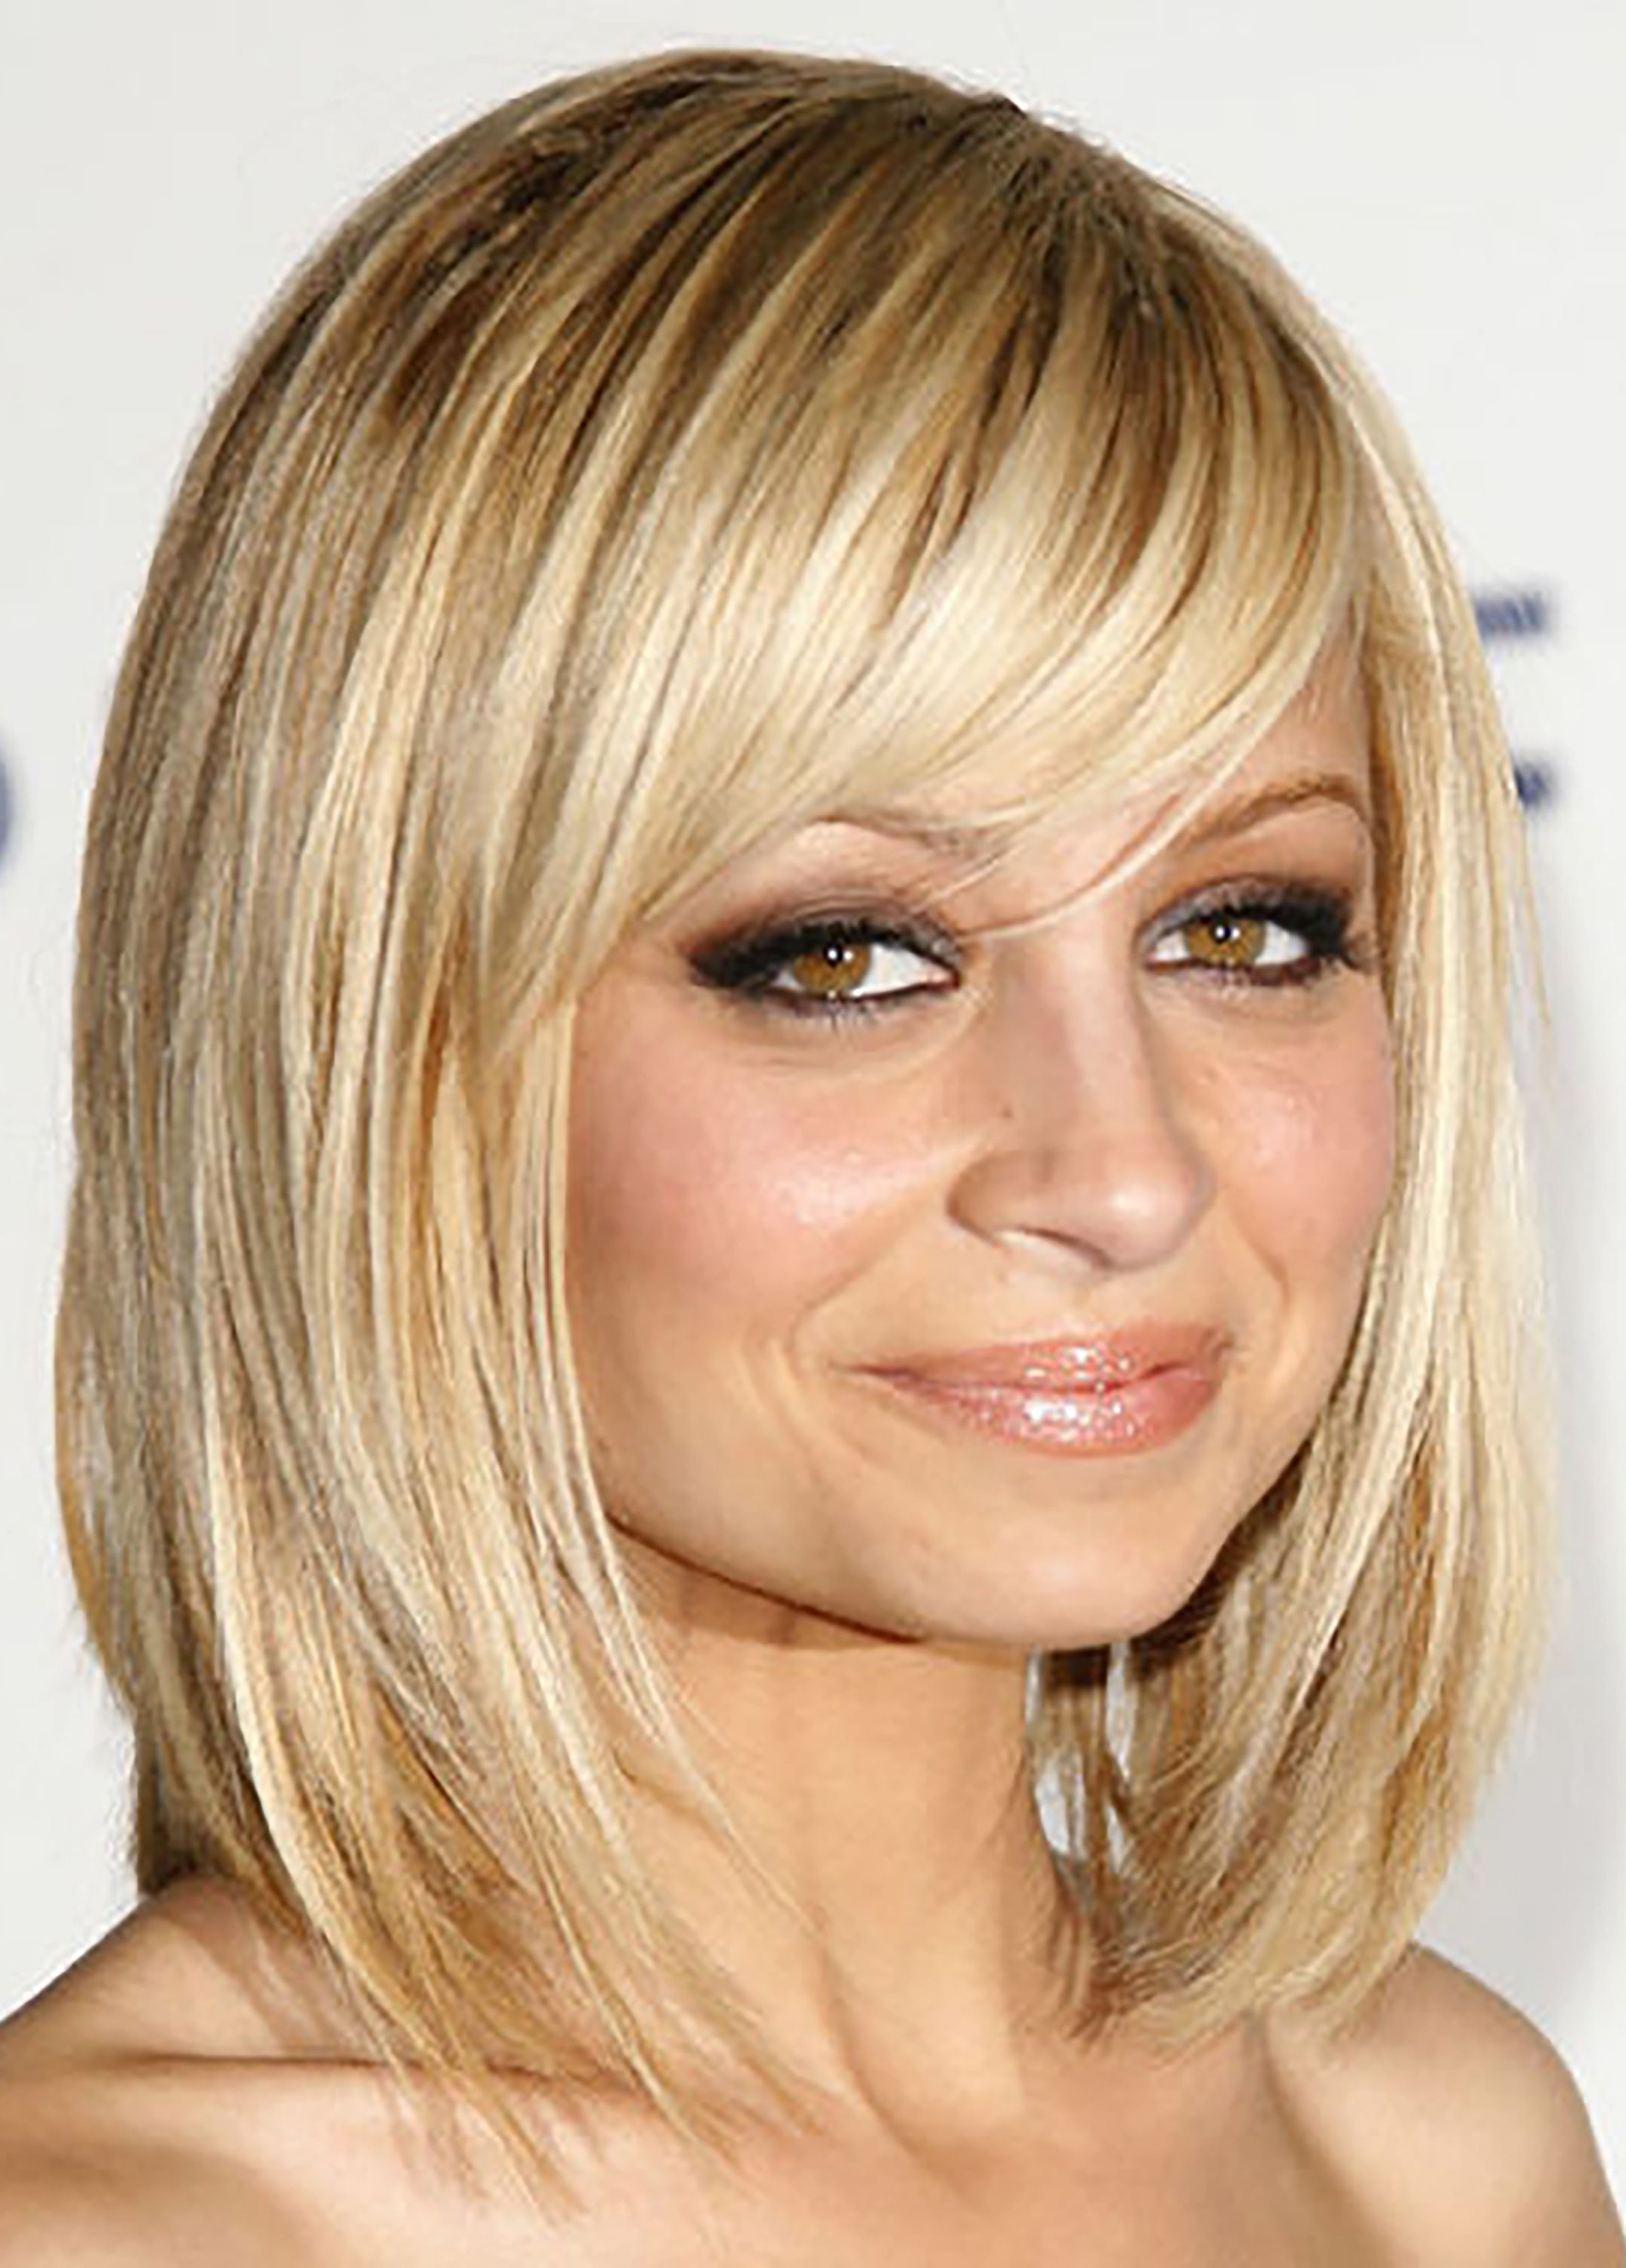 Current Chin Length Bob Hairstyles With Middle Part Regarding 45 Cute Short Haircuts For Women 2019 – Short Celebrity (View 16 of 20)